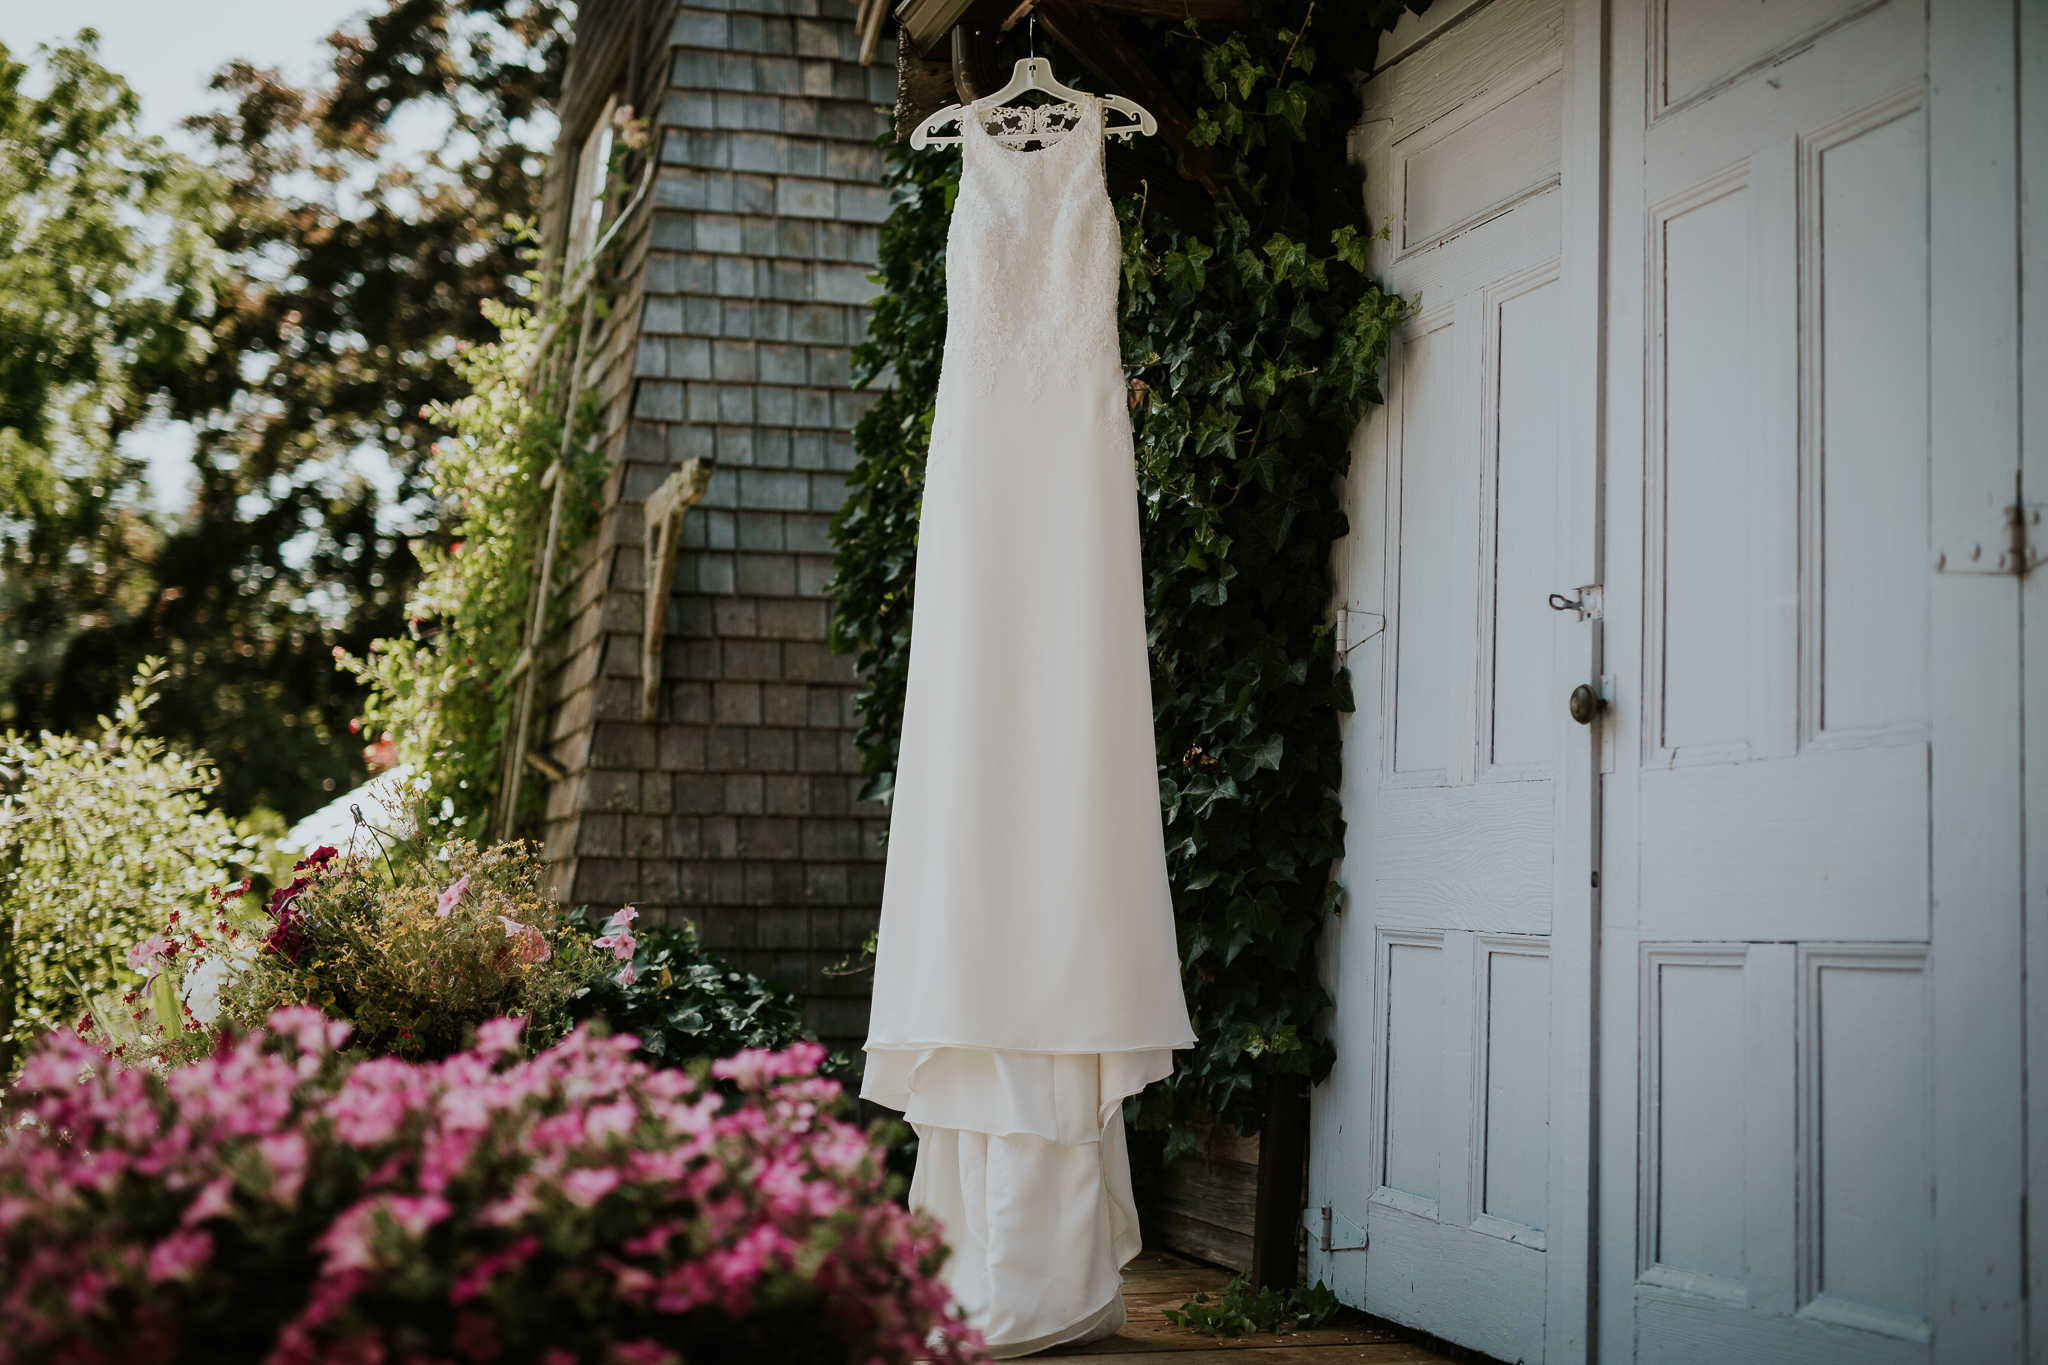 Brides wedding dress hanging on vines at Starling Lane Winery, Victoria BC